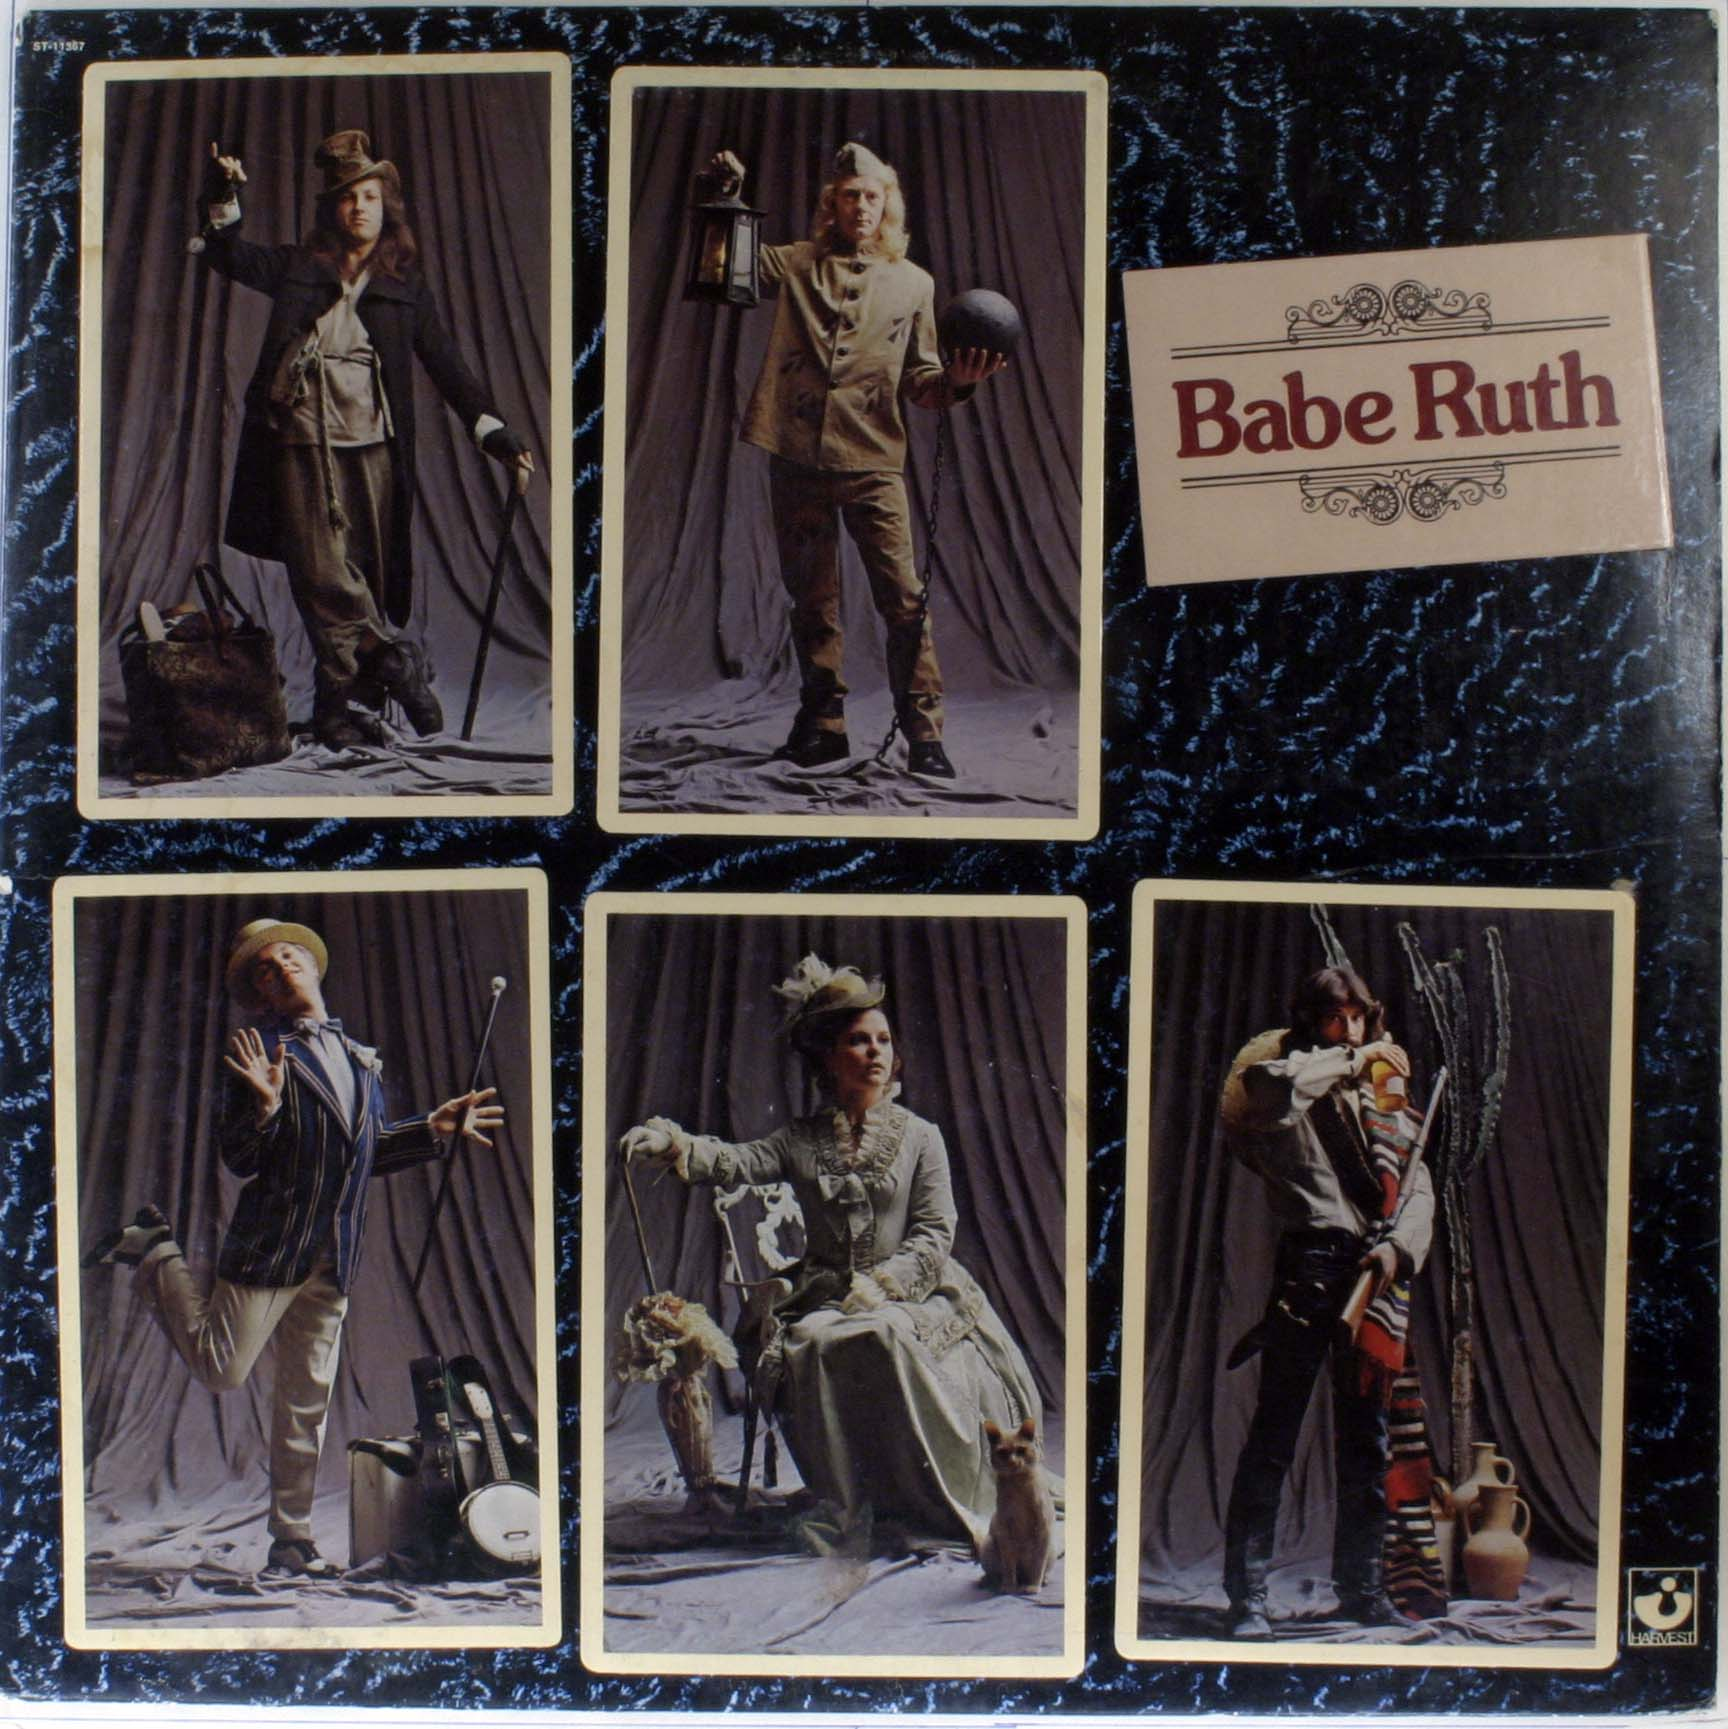 Babe Ruth - Babe Ruth Single